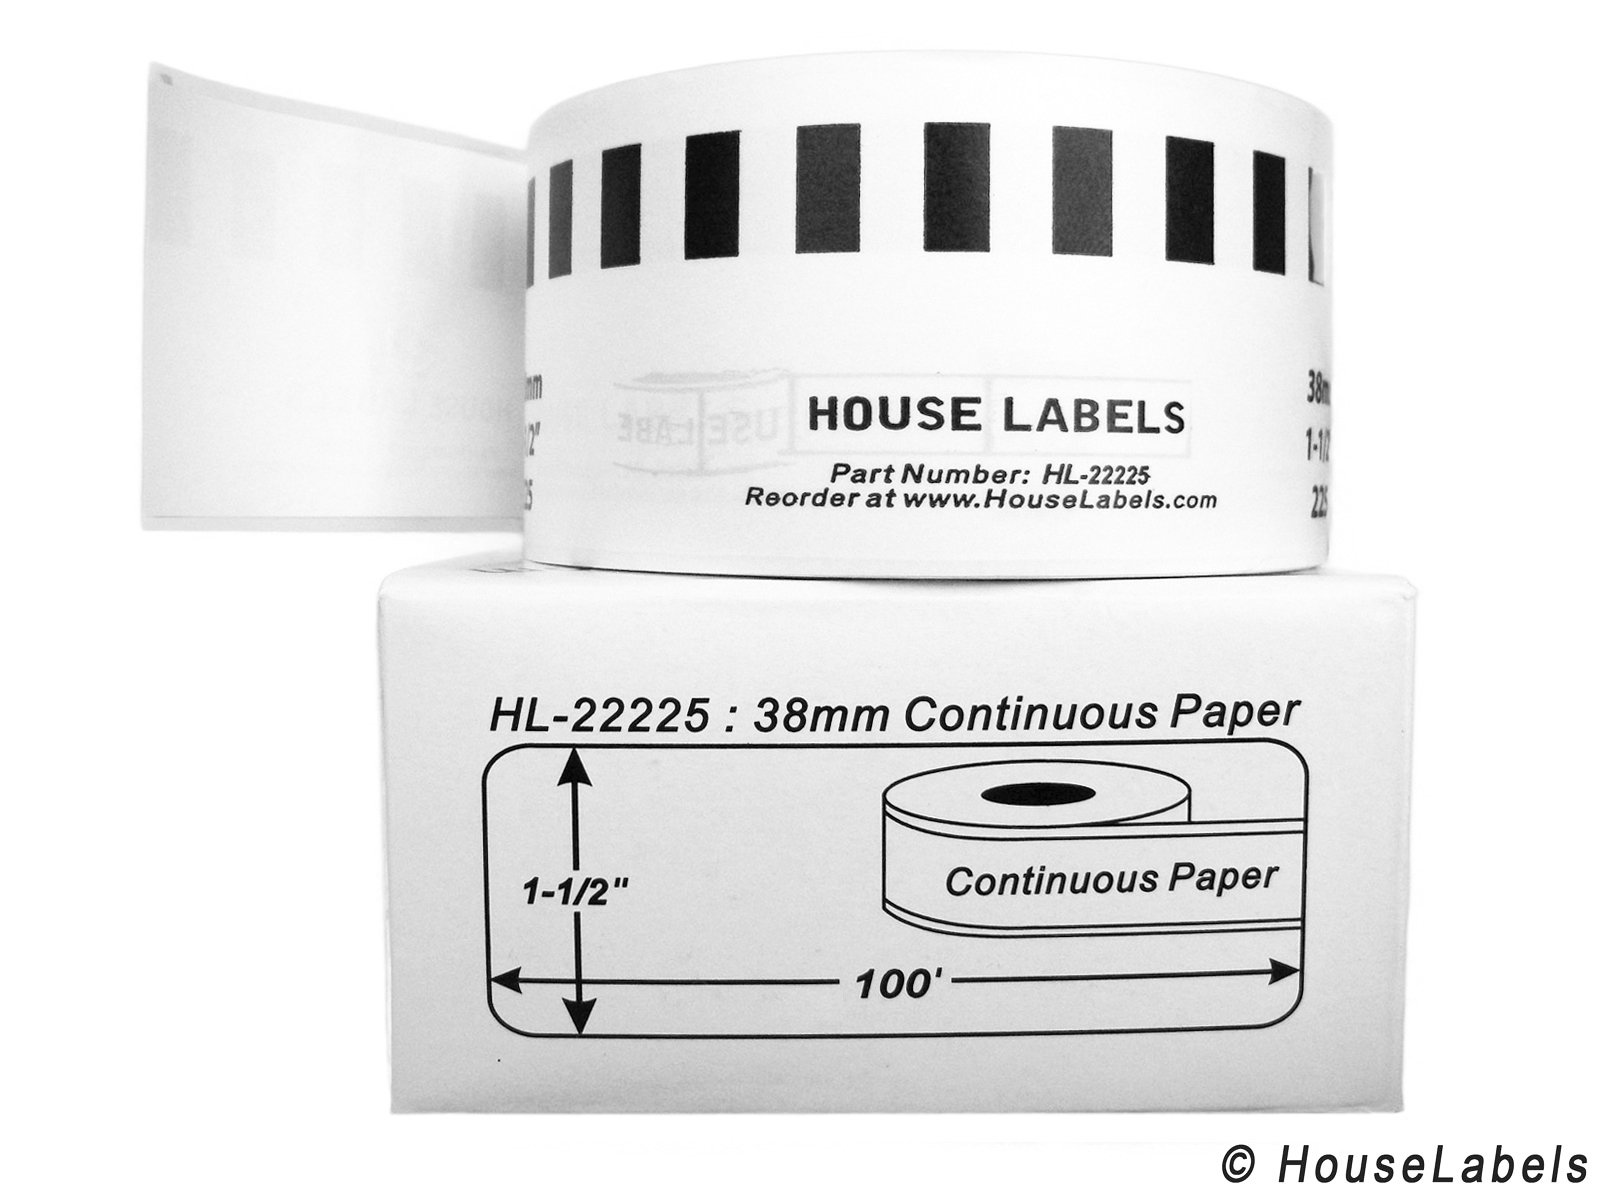 4 Rolls; Continuous Paper, BROTHER-Compatible DK-2225 Continuous Paper Labels (1-1/2'' x 100'; 38mm30.48m) -- BPA Free!